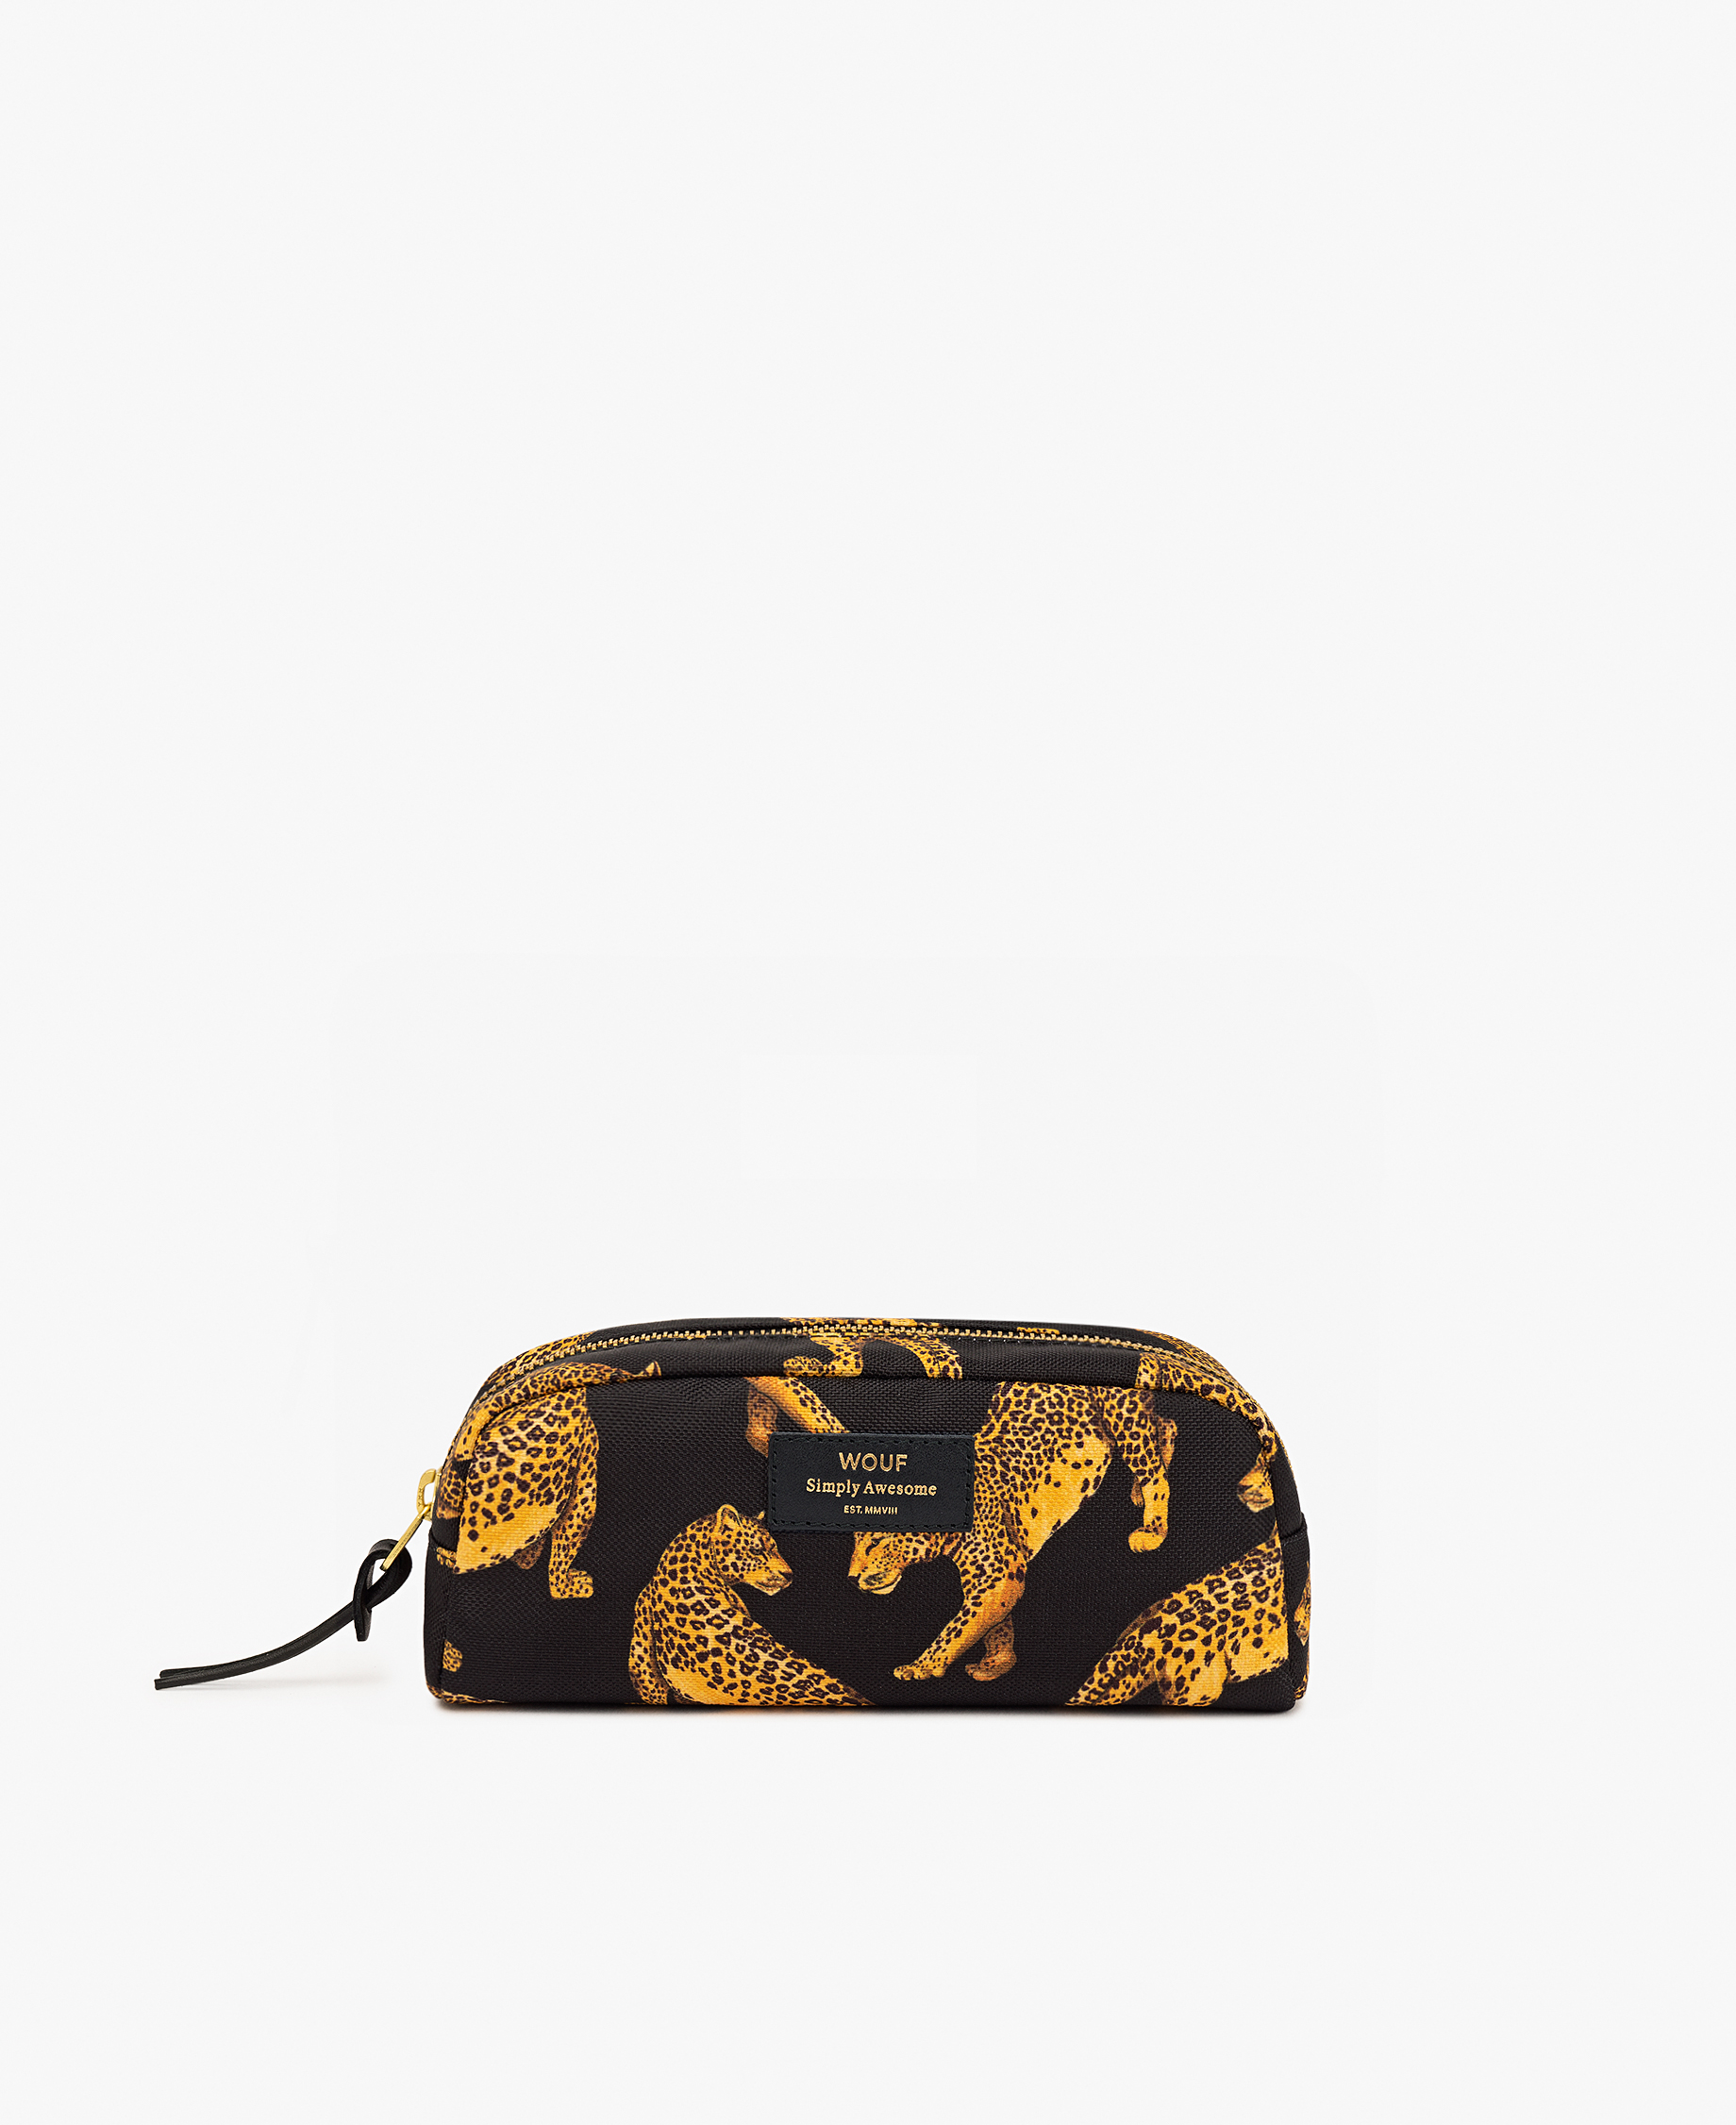 black and yellow toiletry bag